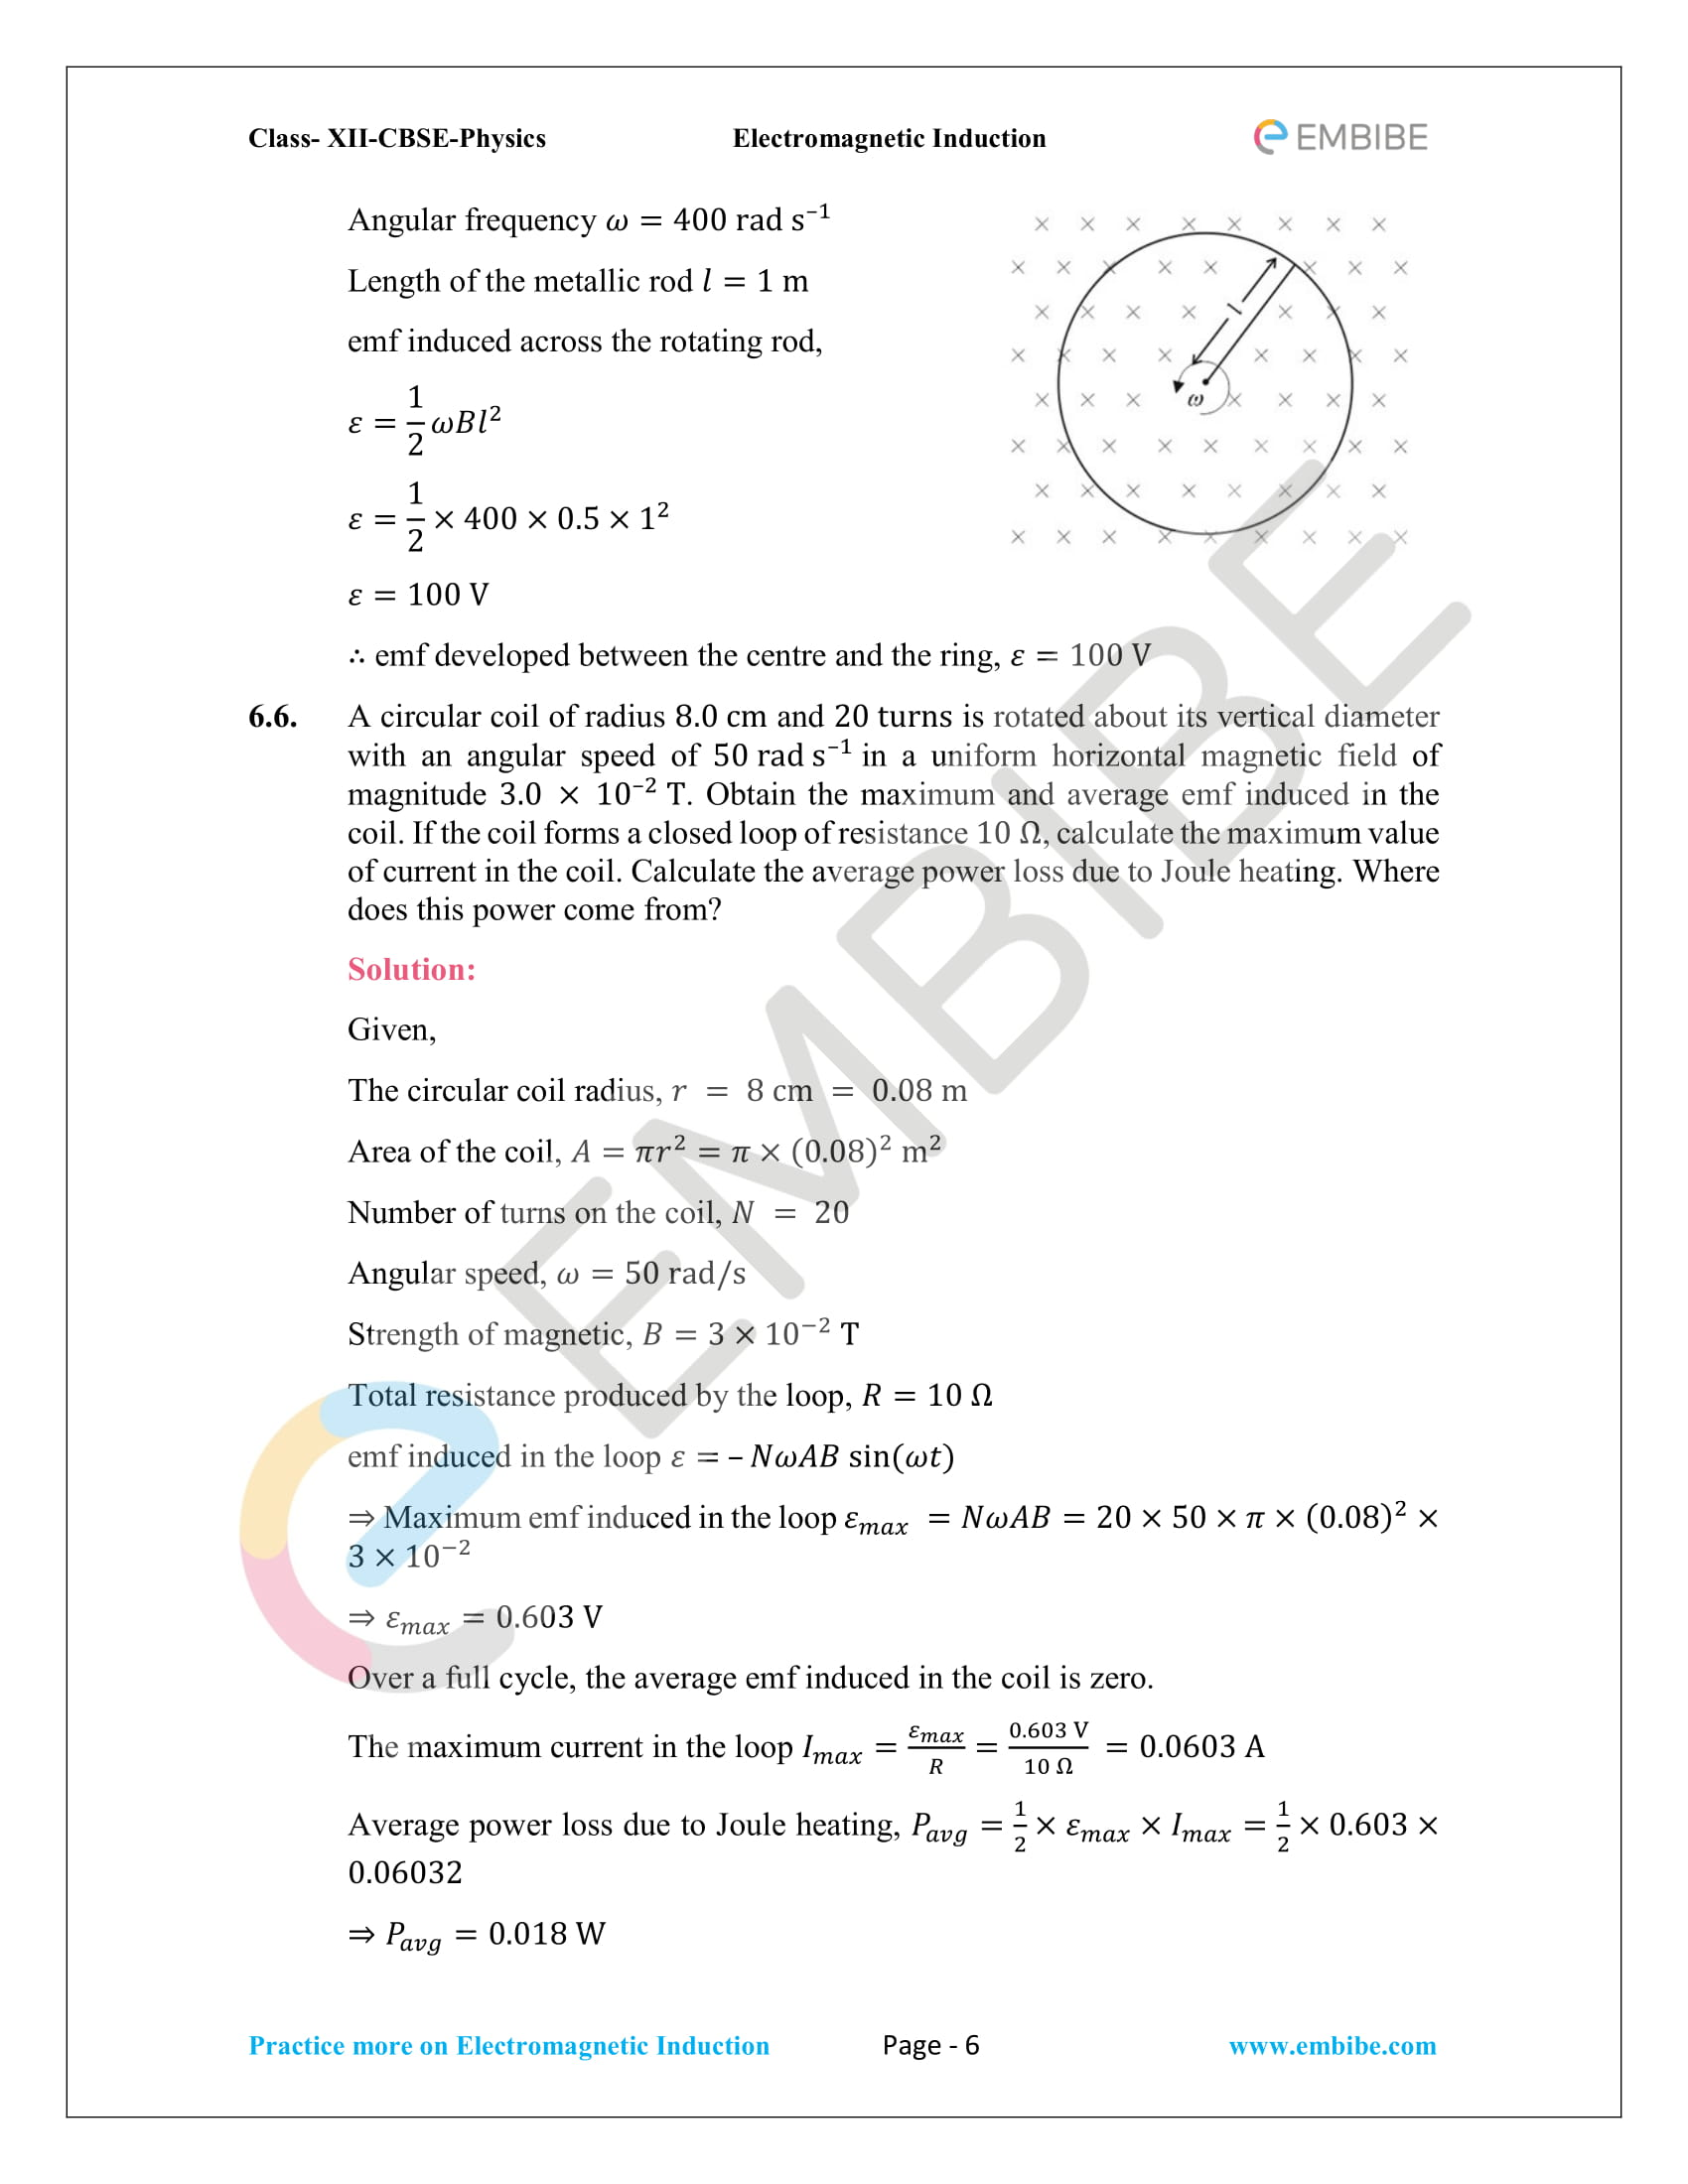 CBSE NCERT Solutions Class 12 Physics Chapter 6 PDF - Electromagnetic Induction - 6